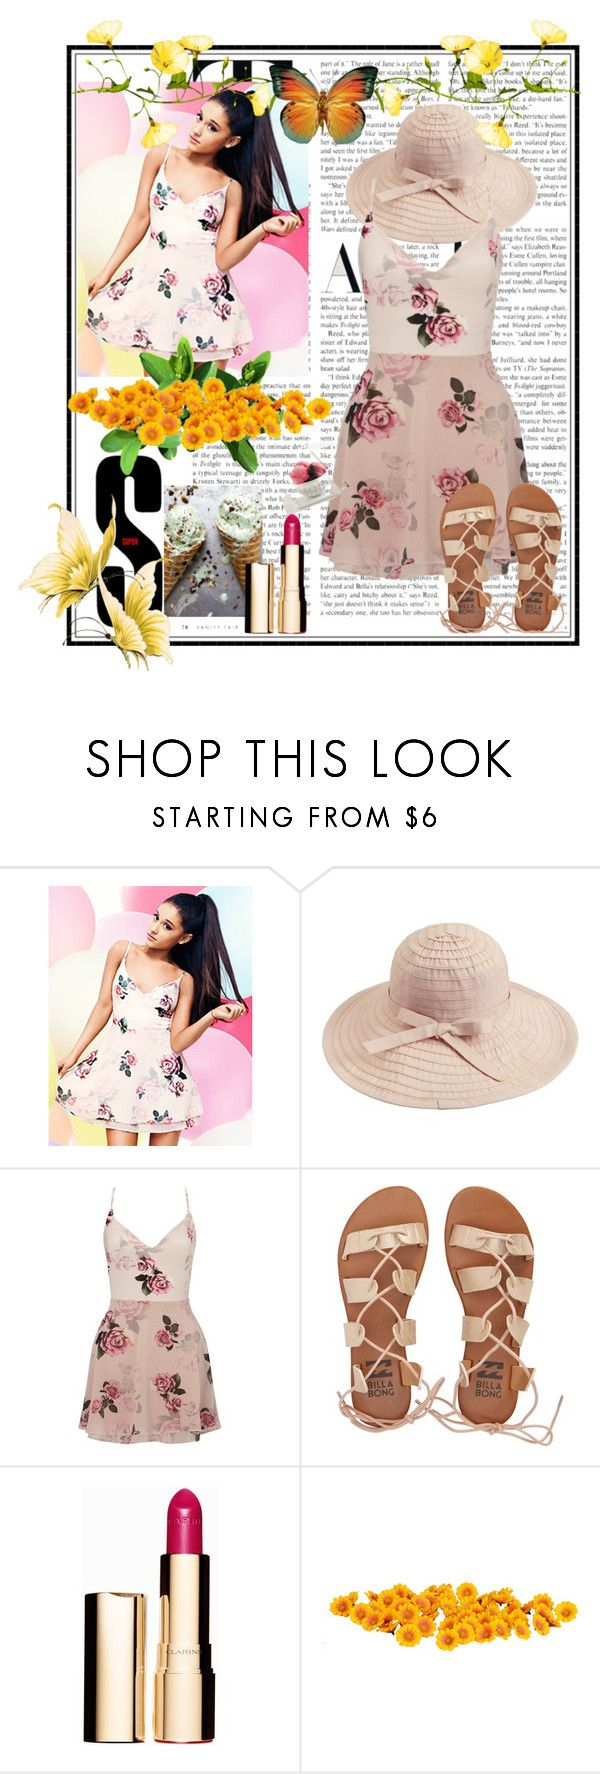 """""""Summer"""" by dudavagsantos ❤ liked on Polyvore featuring Lipsy, Billabong, Clarins and Summer"""